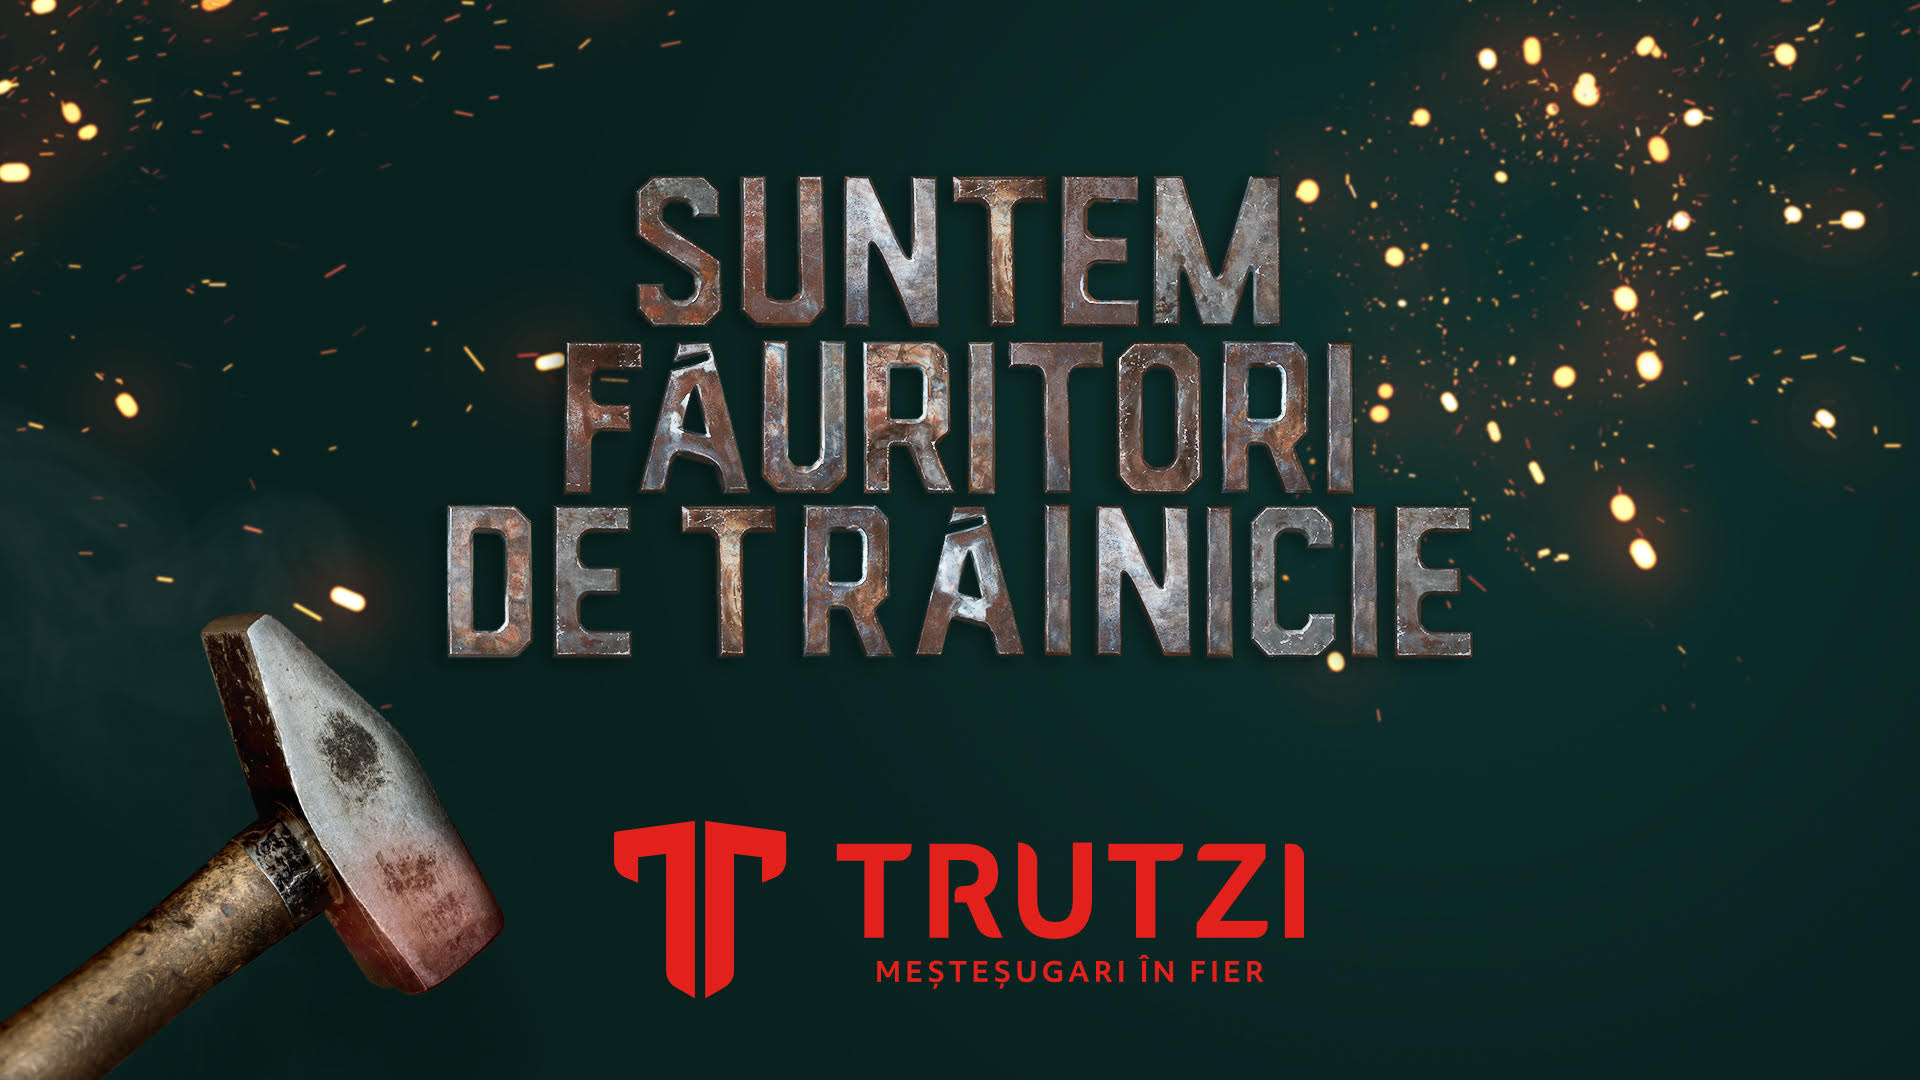 The future image of Trutzi crafted by Rusu+Bortun in the latest communication campaign